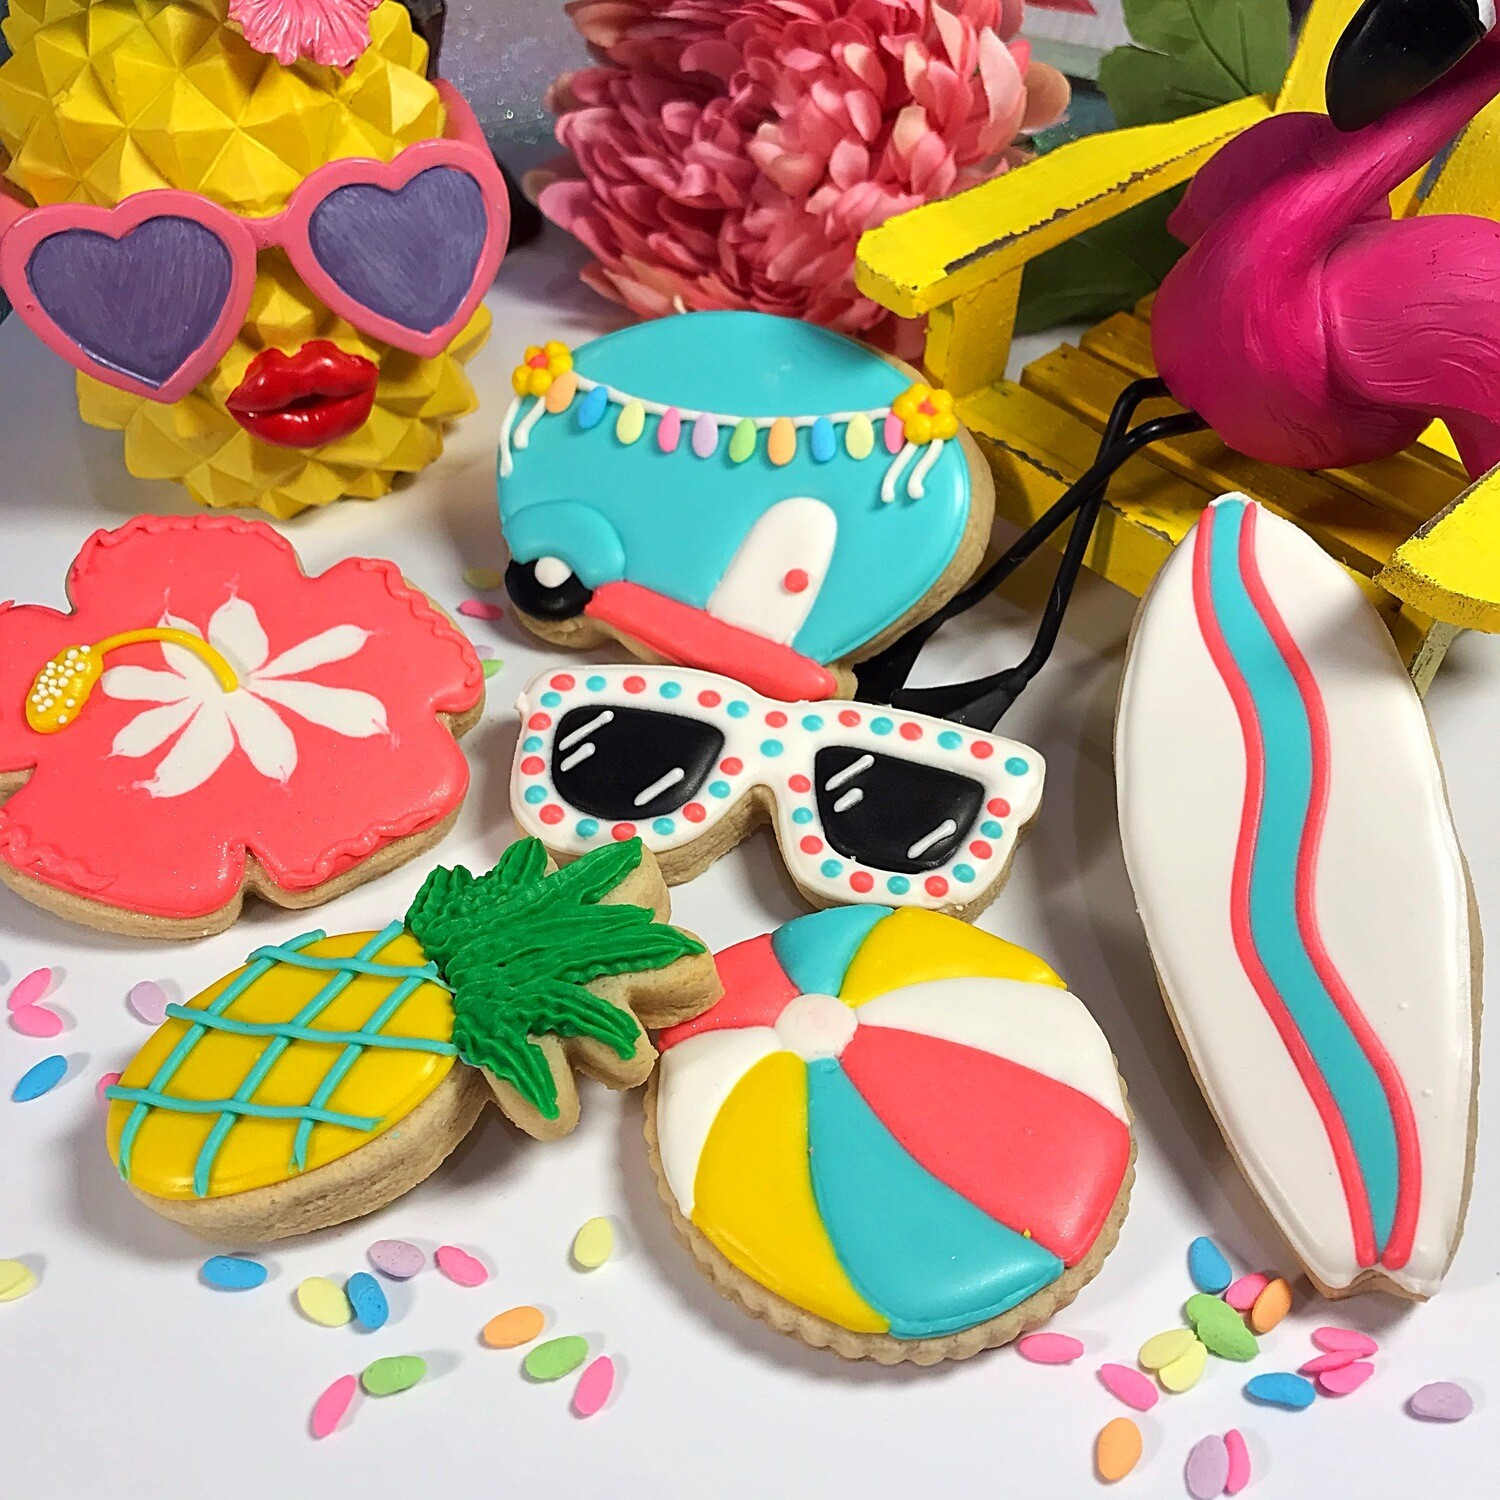 SUMMER TIME Decorating Workshop - TUESDAY, JUNE 18 at 6:30 p.m. (KIEPERSOL'S SALT KITCHEN) - CHILD TICKET (Age 6-12+)